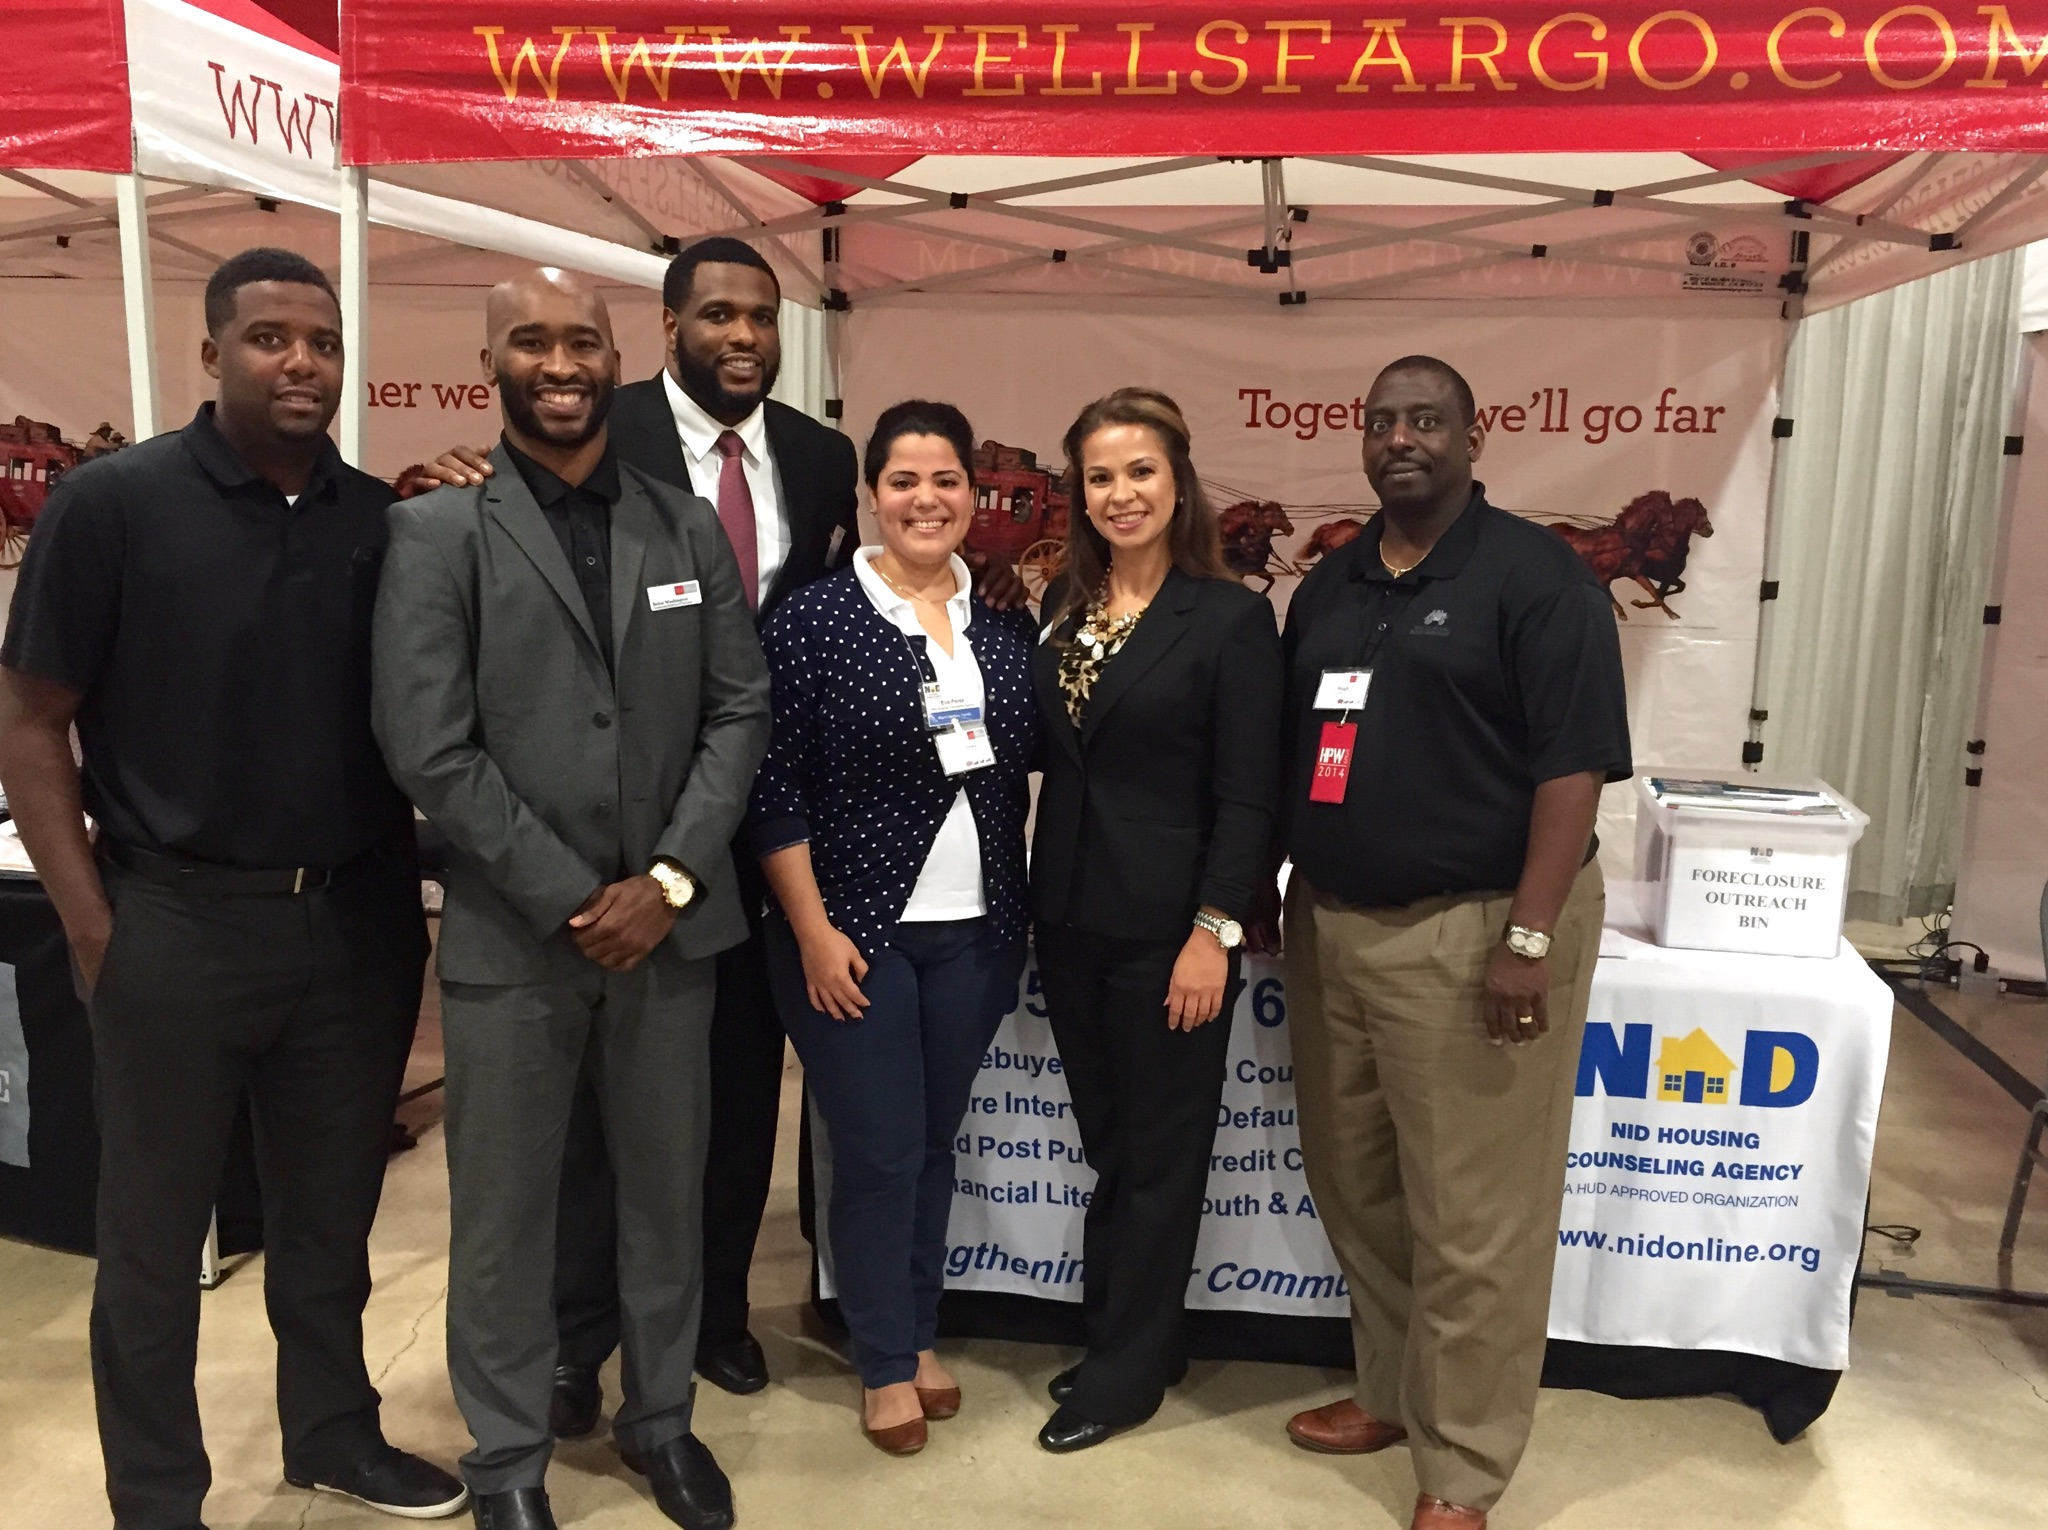 Wells Fargo HO Event Miami